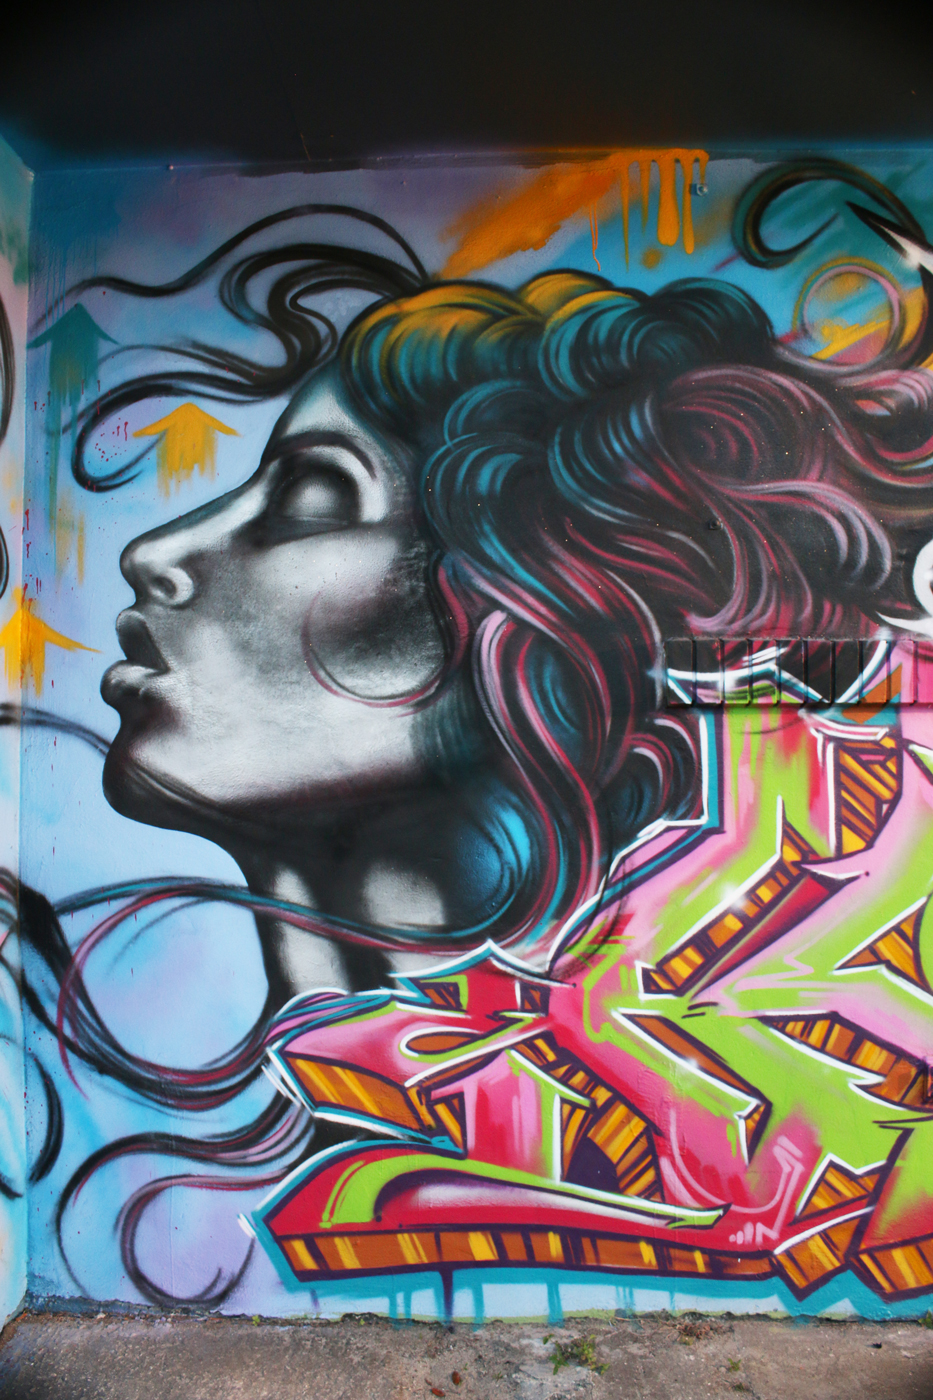 Graffiti artist aladdin paints in wynwood miami danny dillon shampology wall